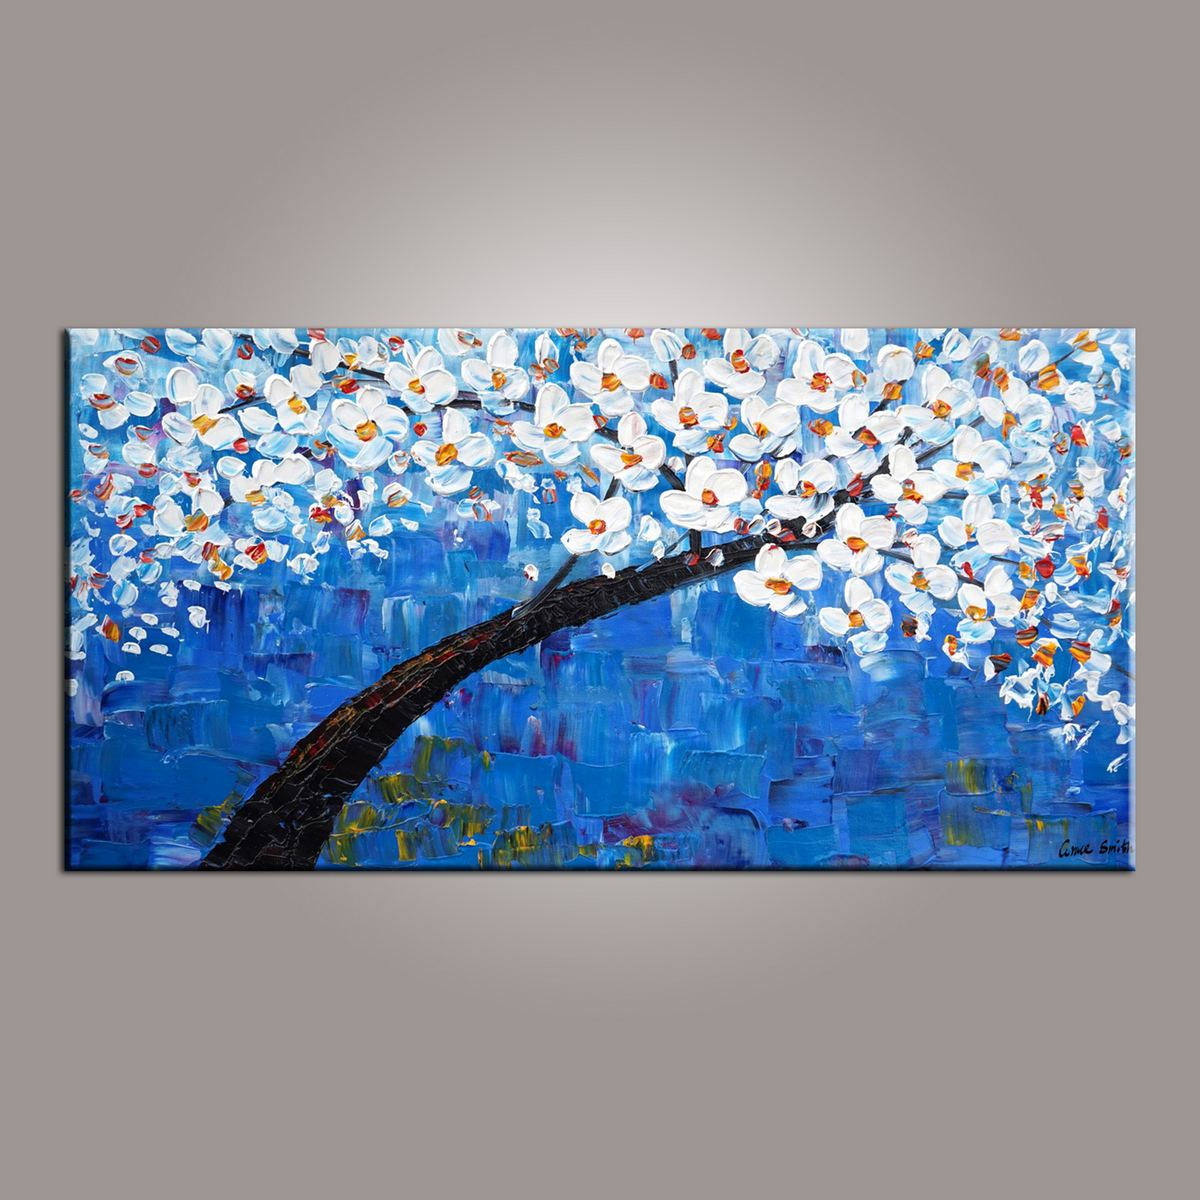 Painting on Sale, Blue Flower Tree Painting, Canvas Art, Abstract Painting, Dining Room Wall Art, Art on Canvas, Modern Art, Contemporary Art